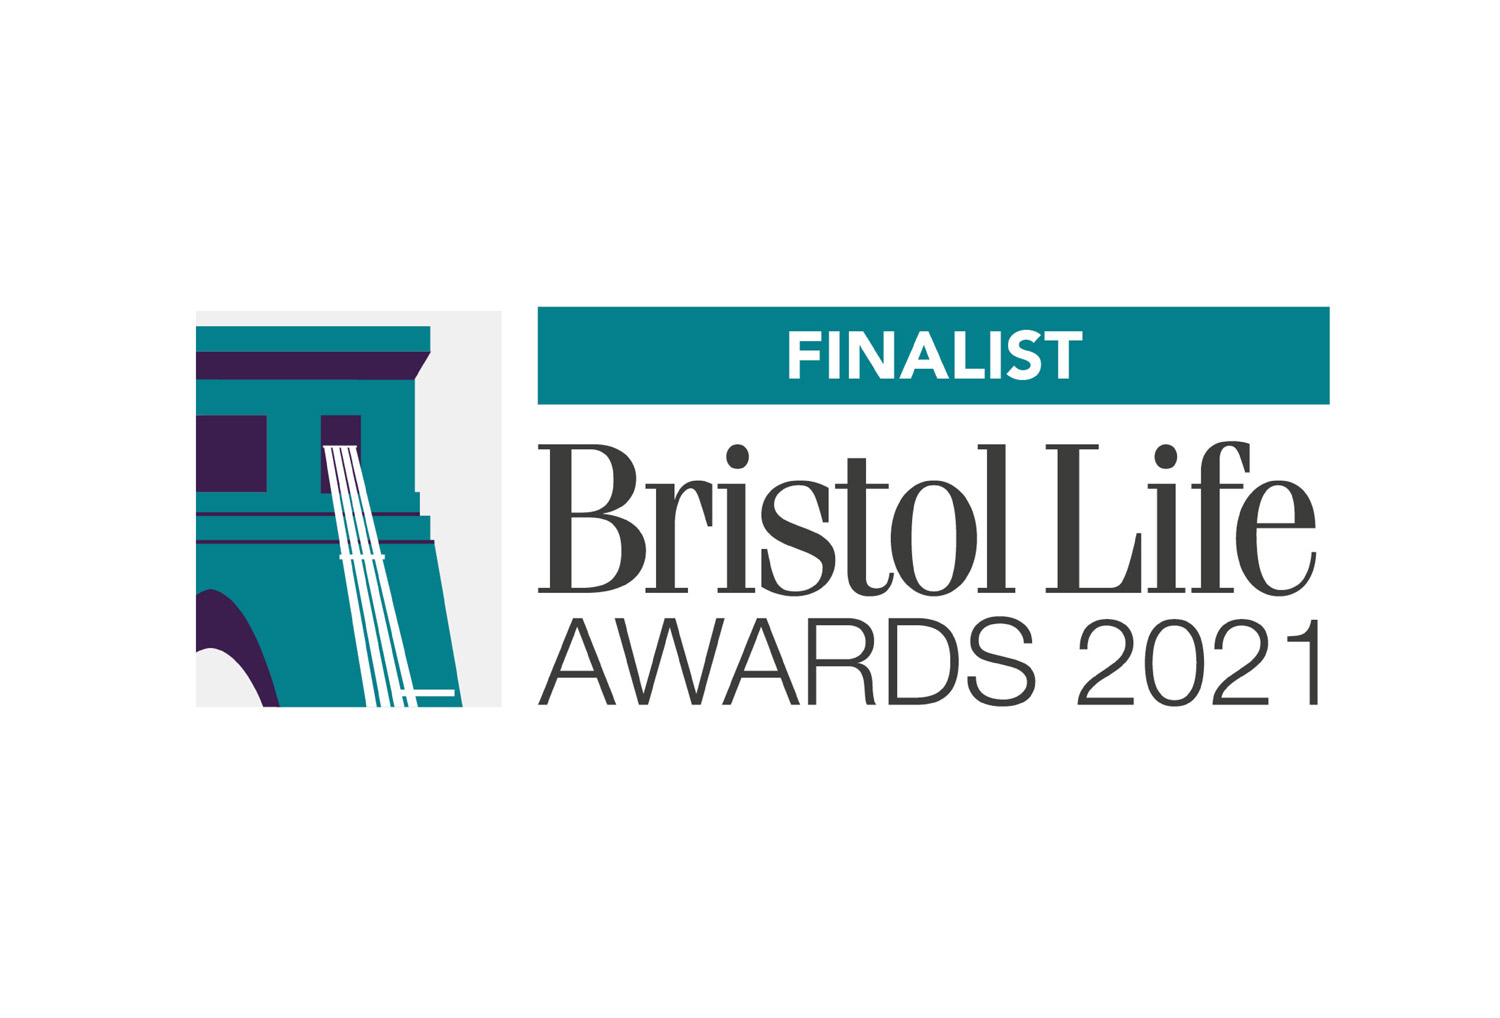 Arobase Creative have become finalists of the 2021 Bristol Life Awards